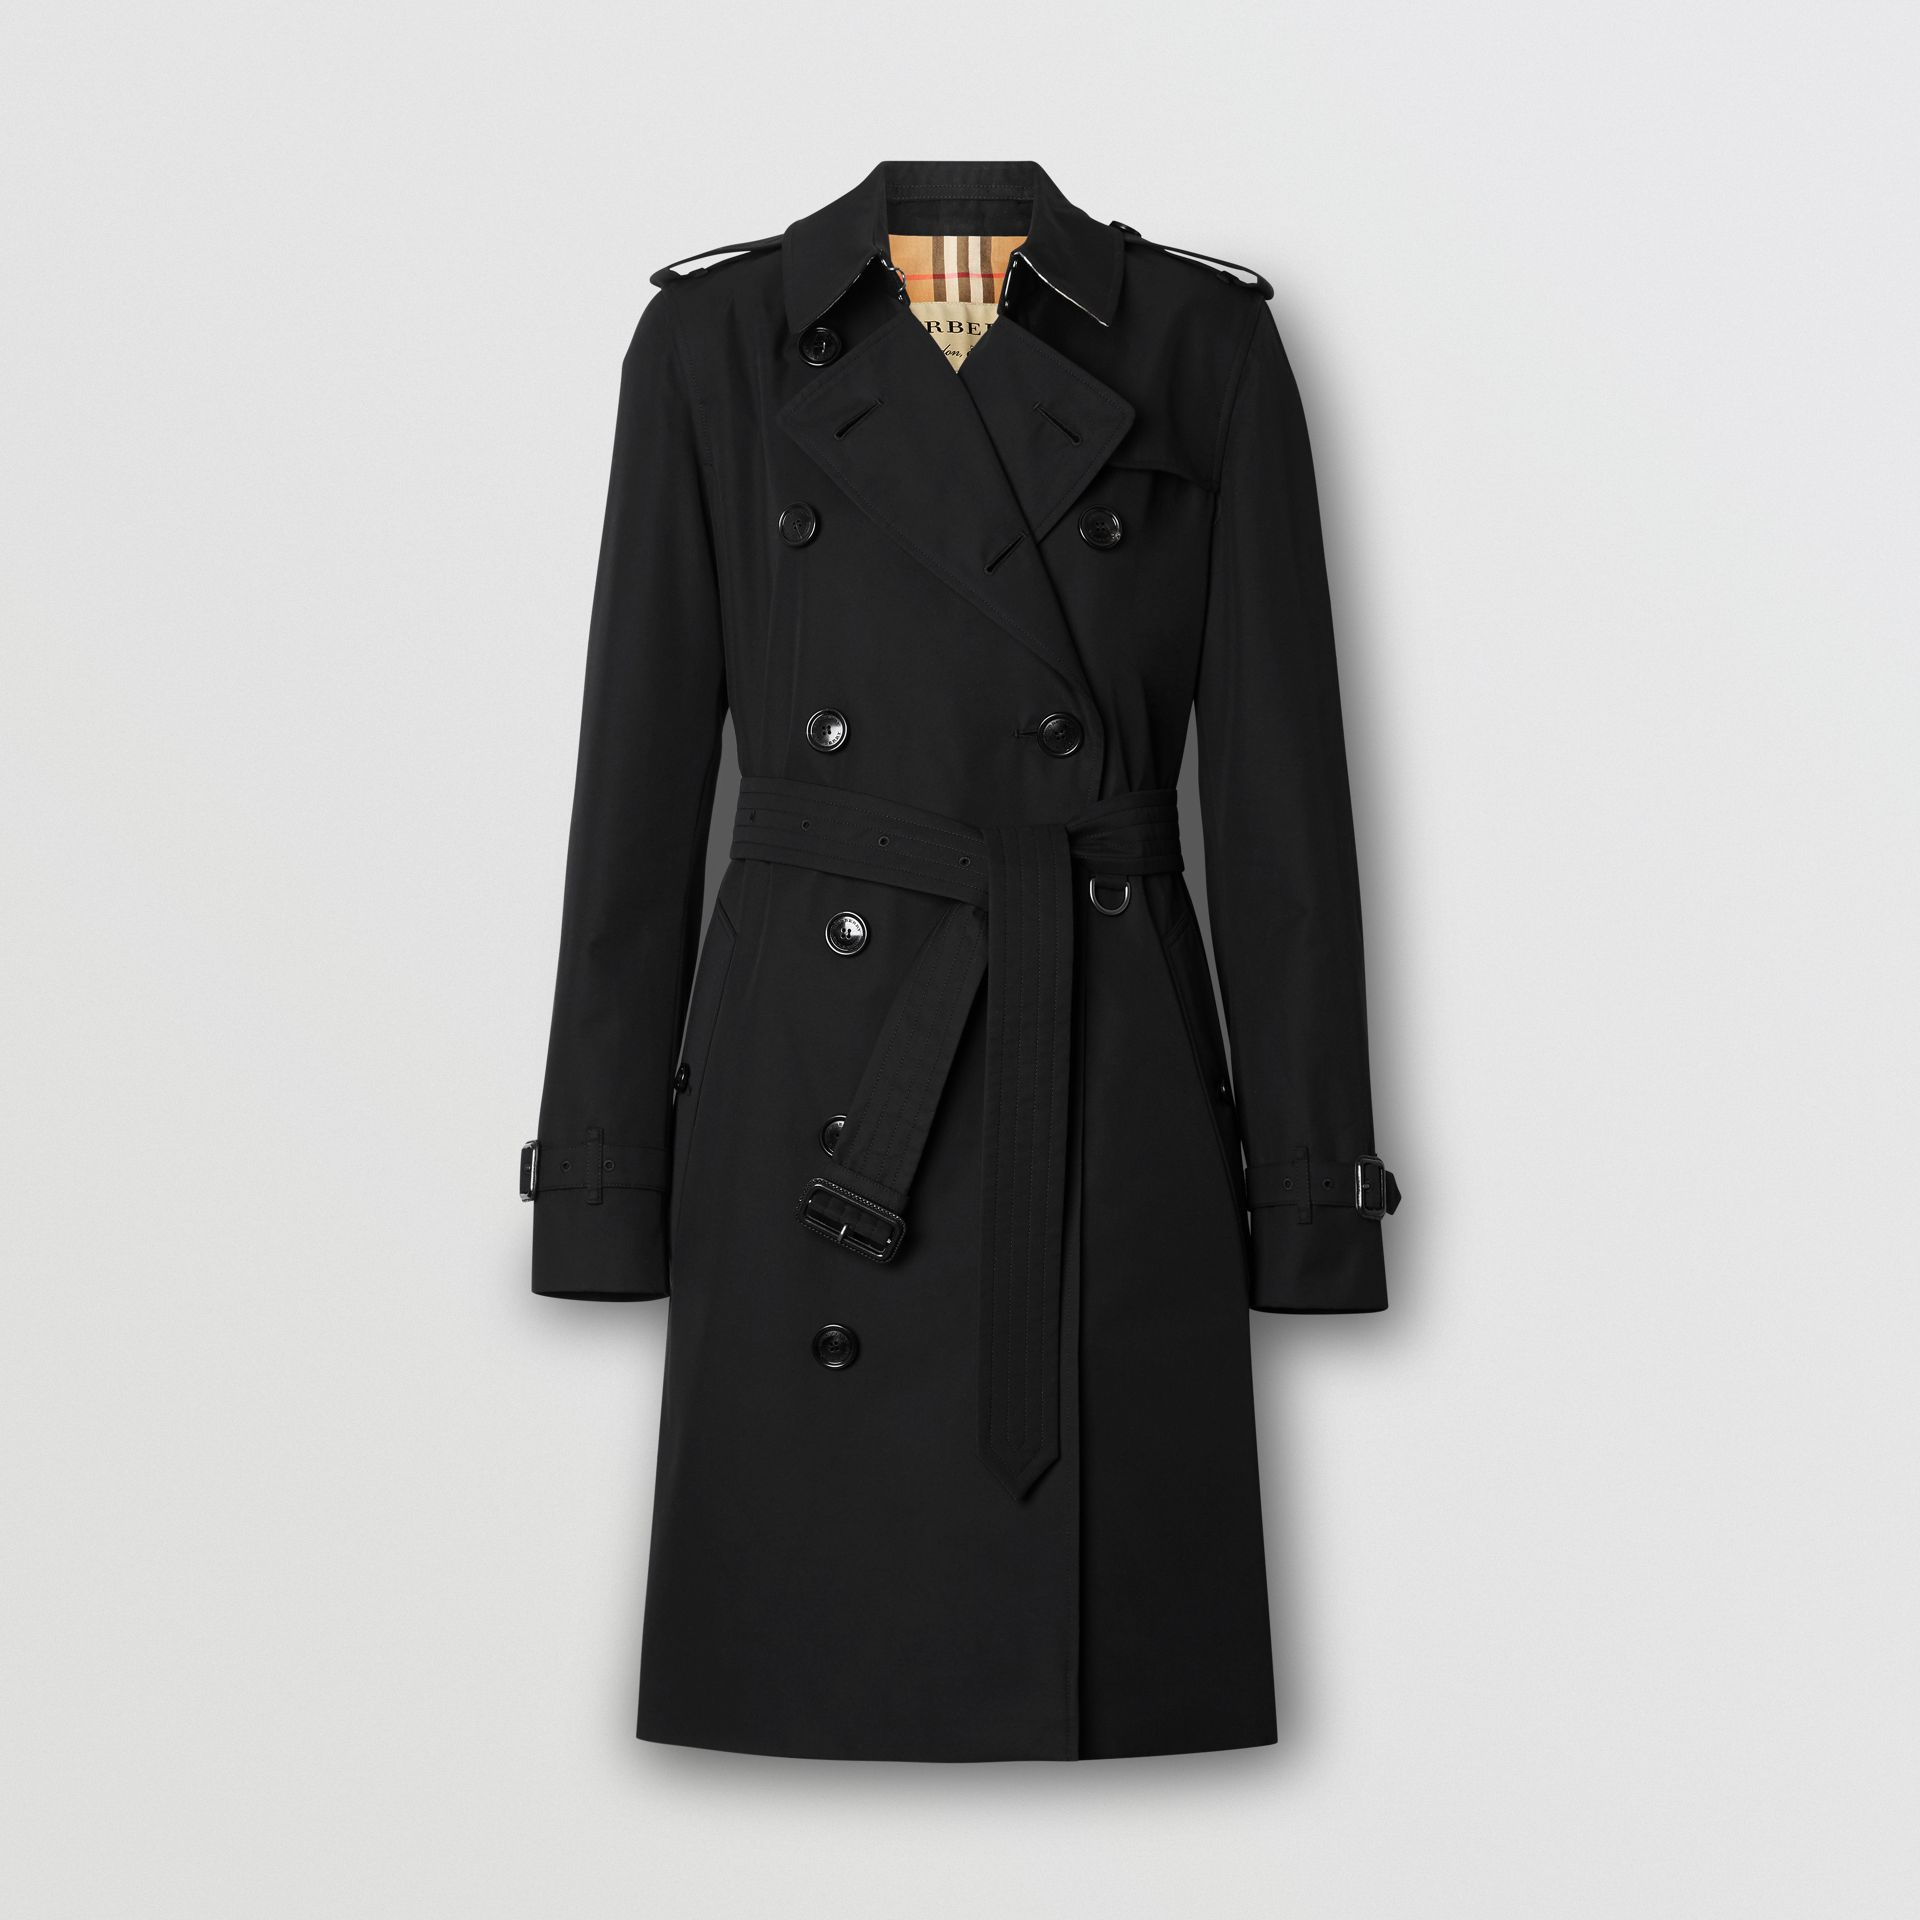 Kensington Fit Cotton Gabardine Trench Coat in Black - Women | Burberry Canada - gallery image 3